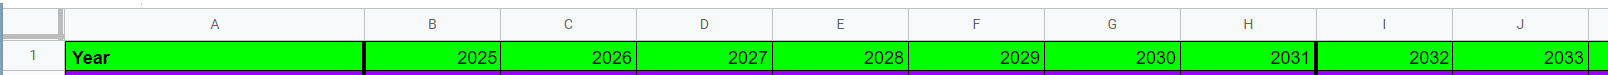 Google sheets row 1, and columns A-J with a green background. Cell A1 reads Year, and columns A-J reads years 2025-2033.